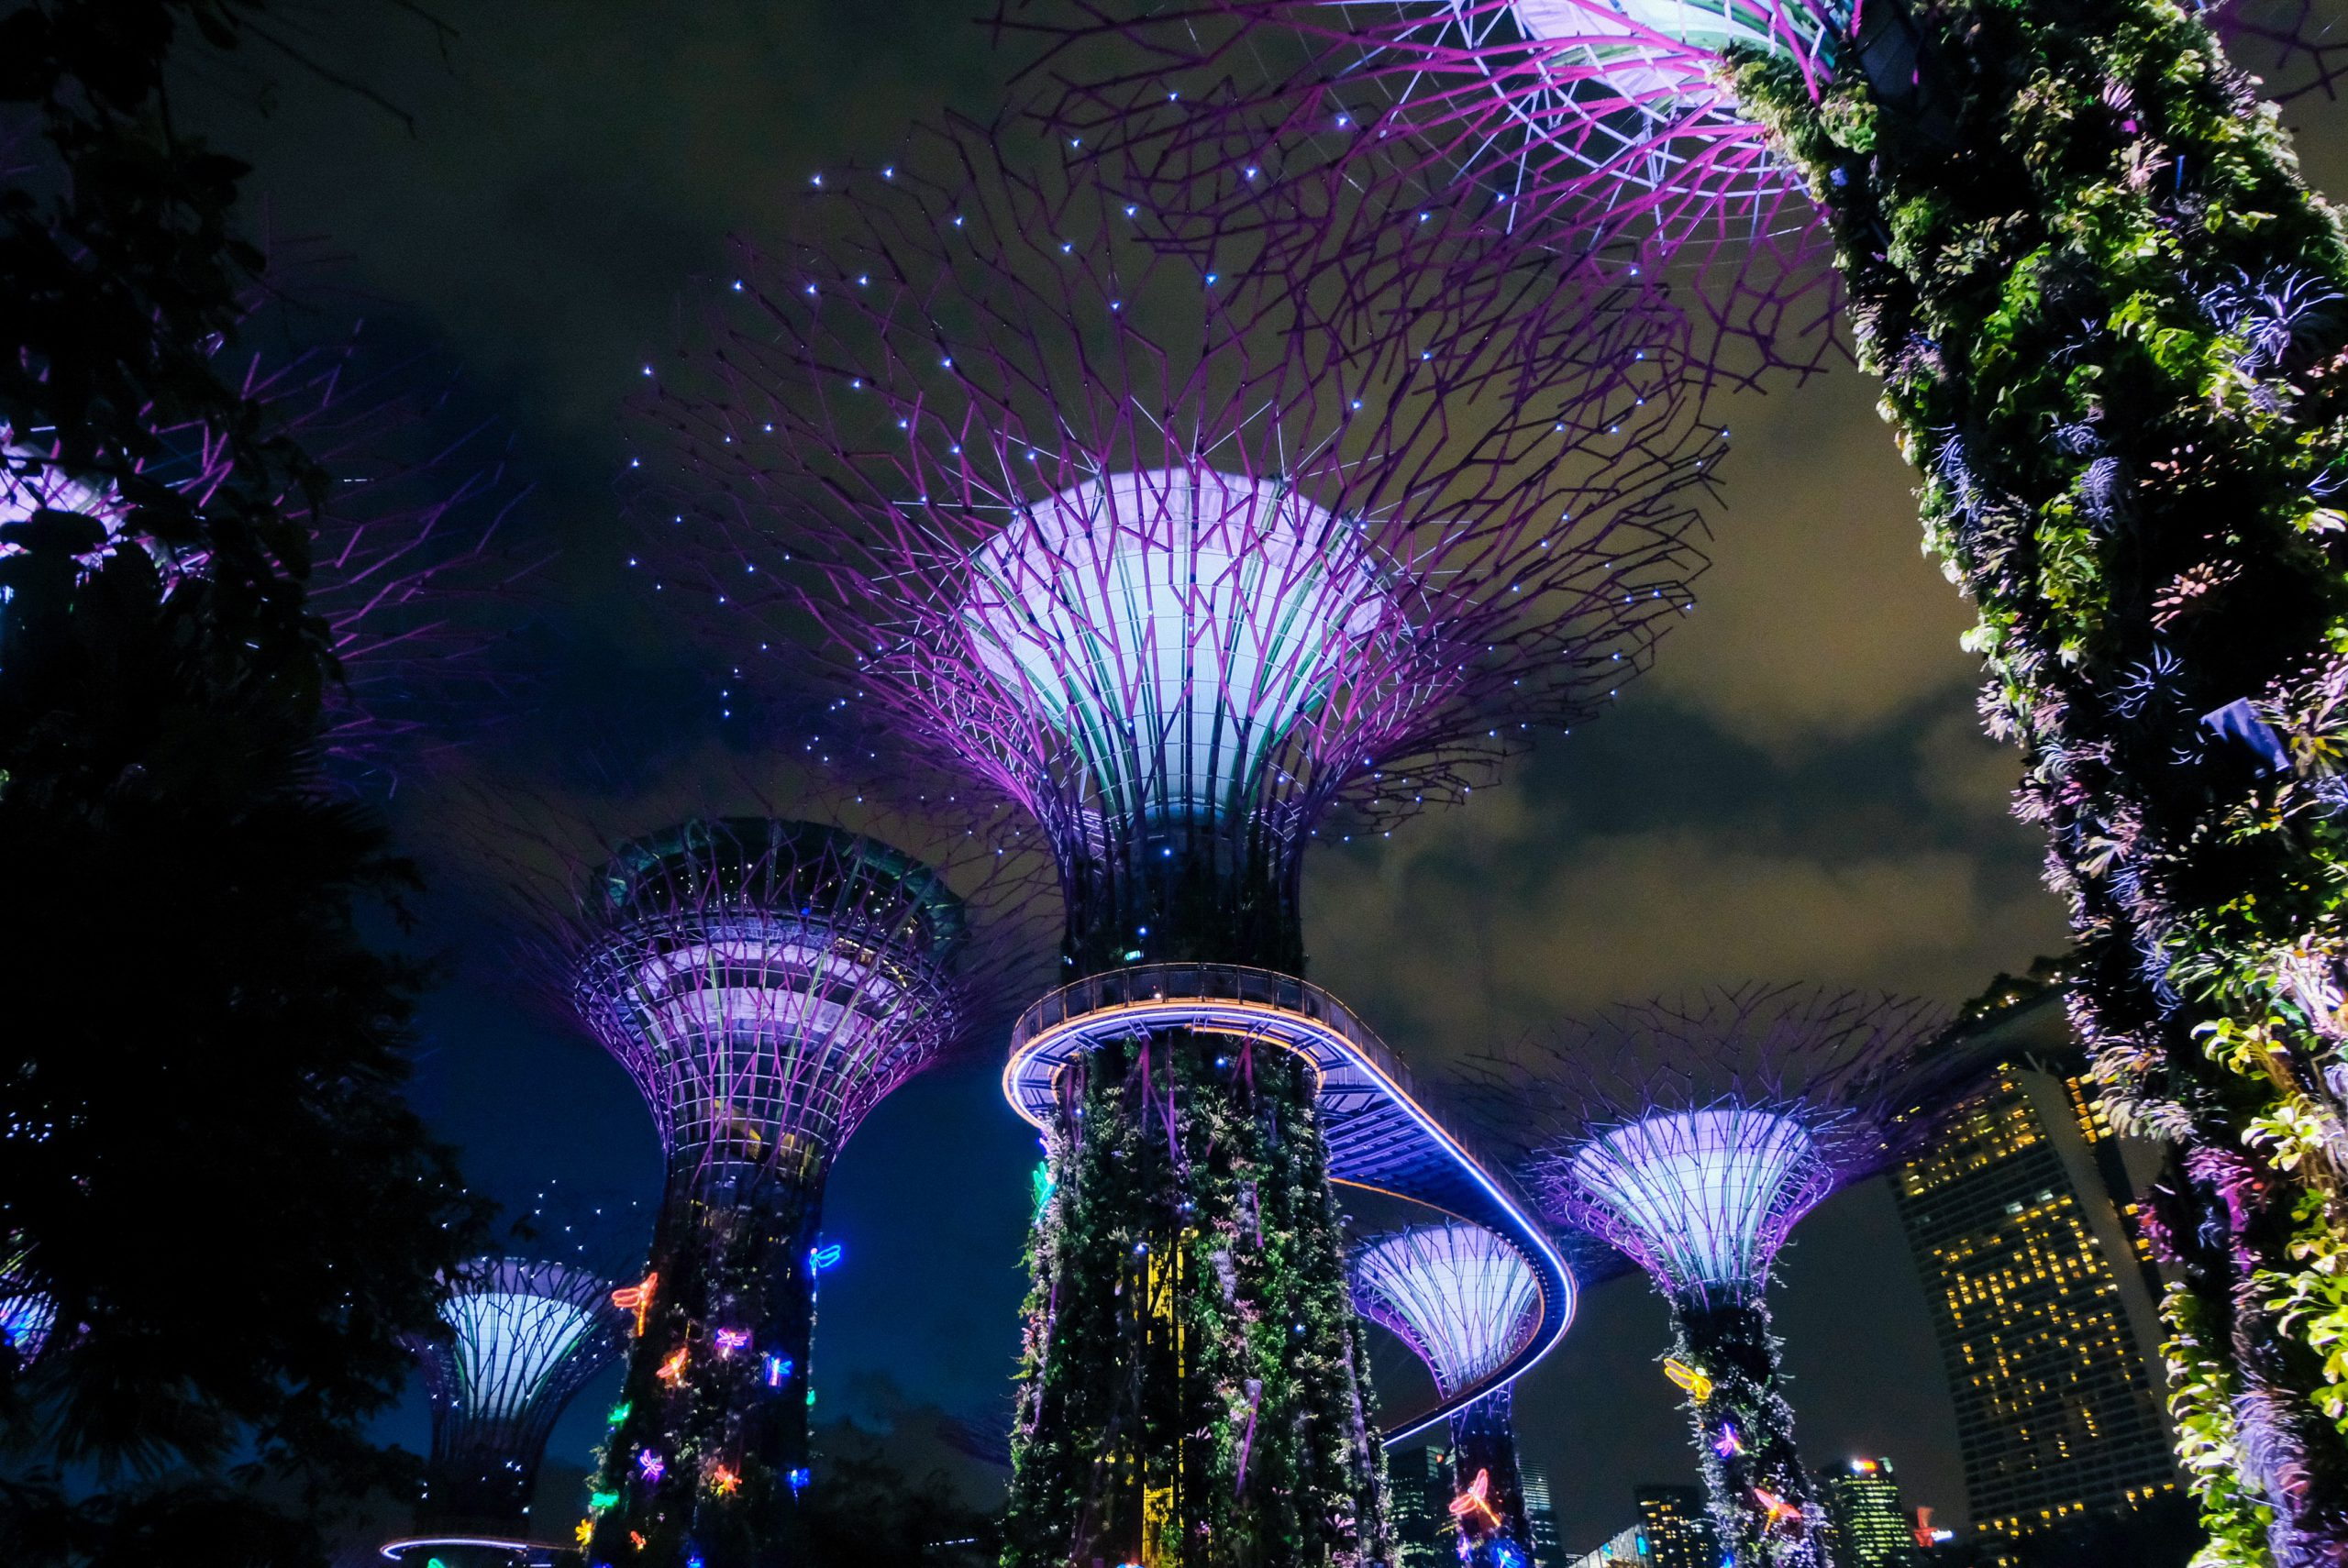 photo of Gardens by the Bay in Singapore, looking up at night with lights